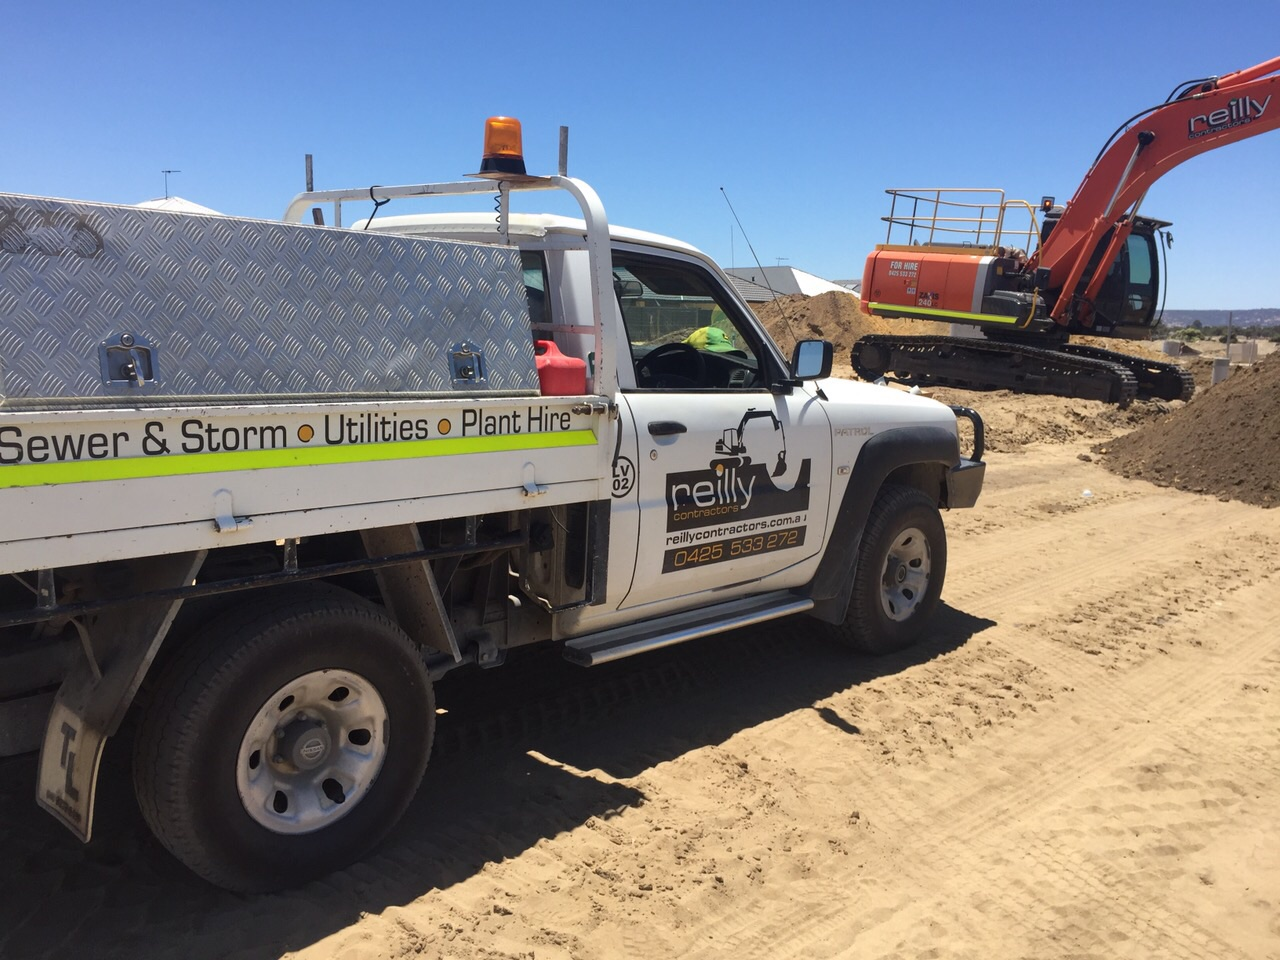 Deliveries to Construction Sites